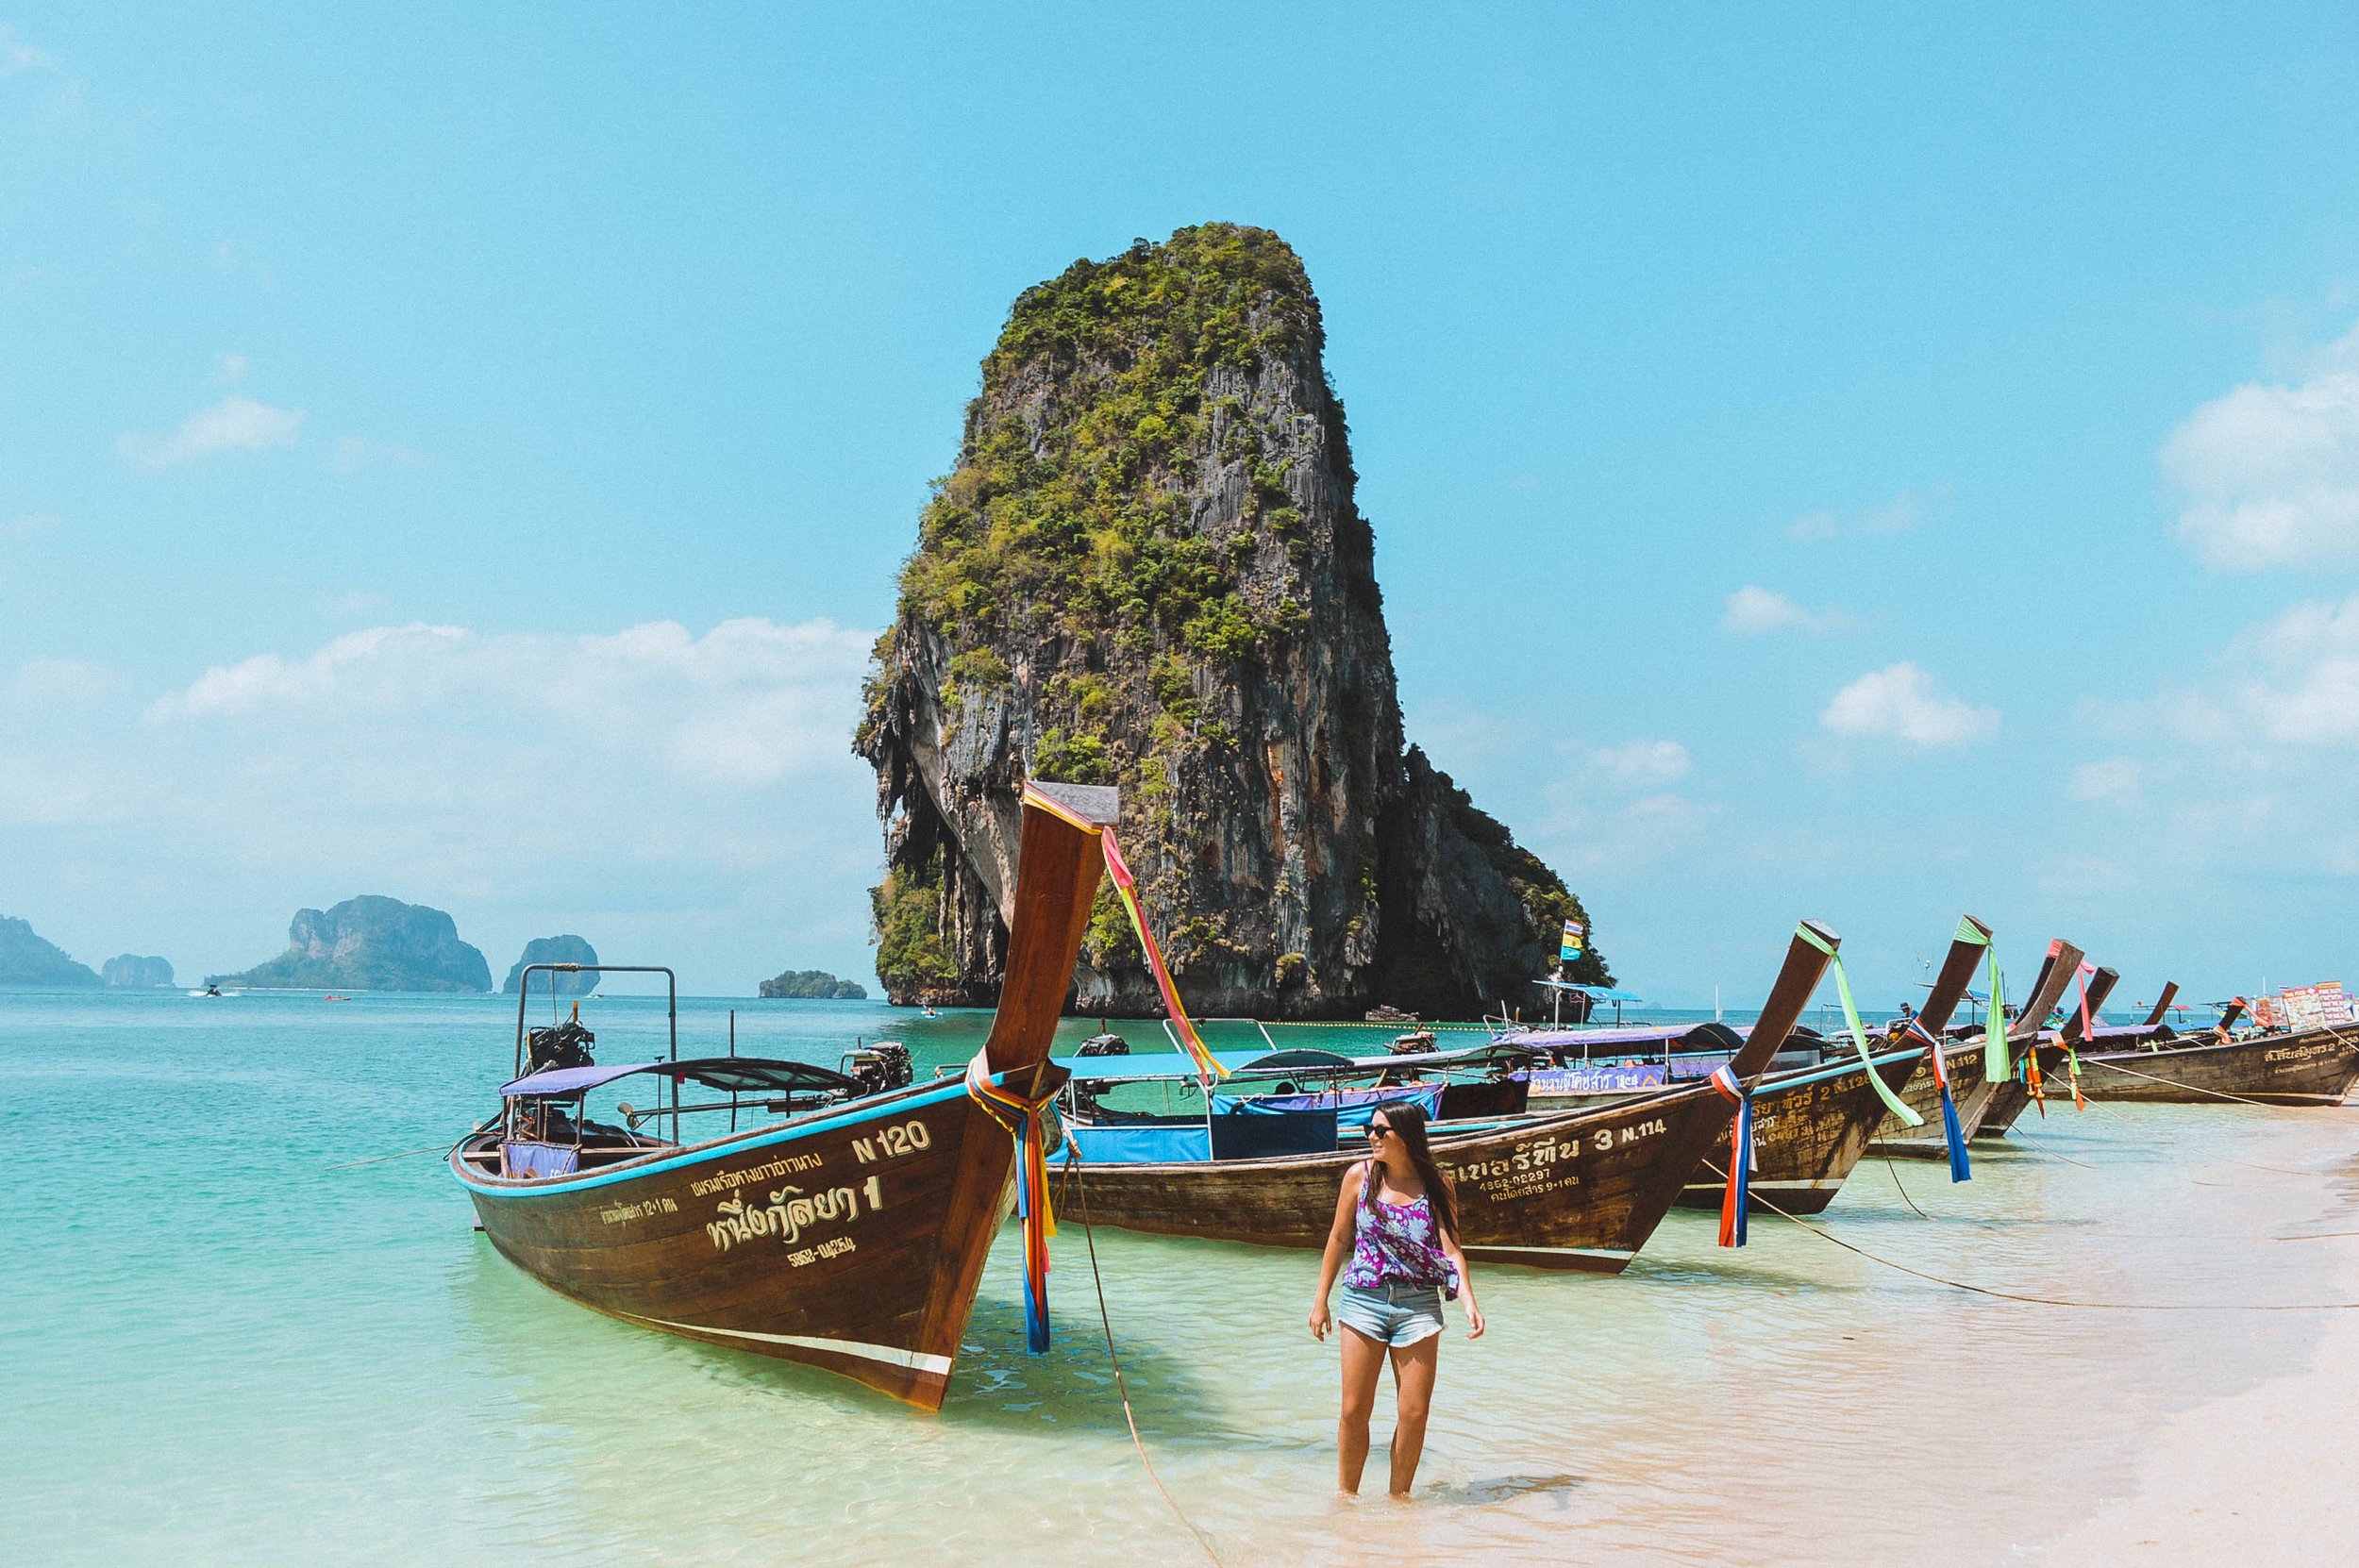 Railay Beach, Thailand